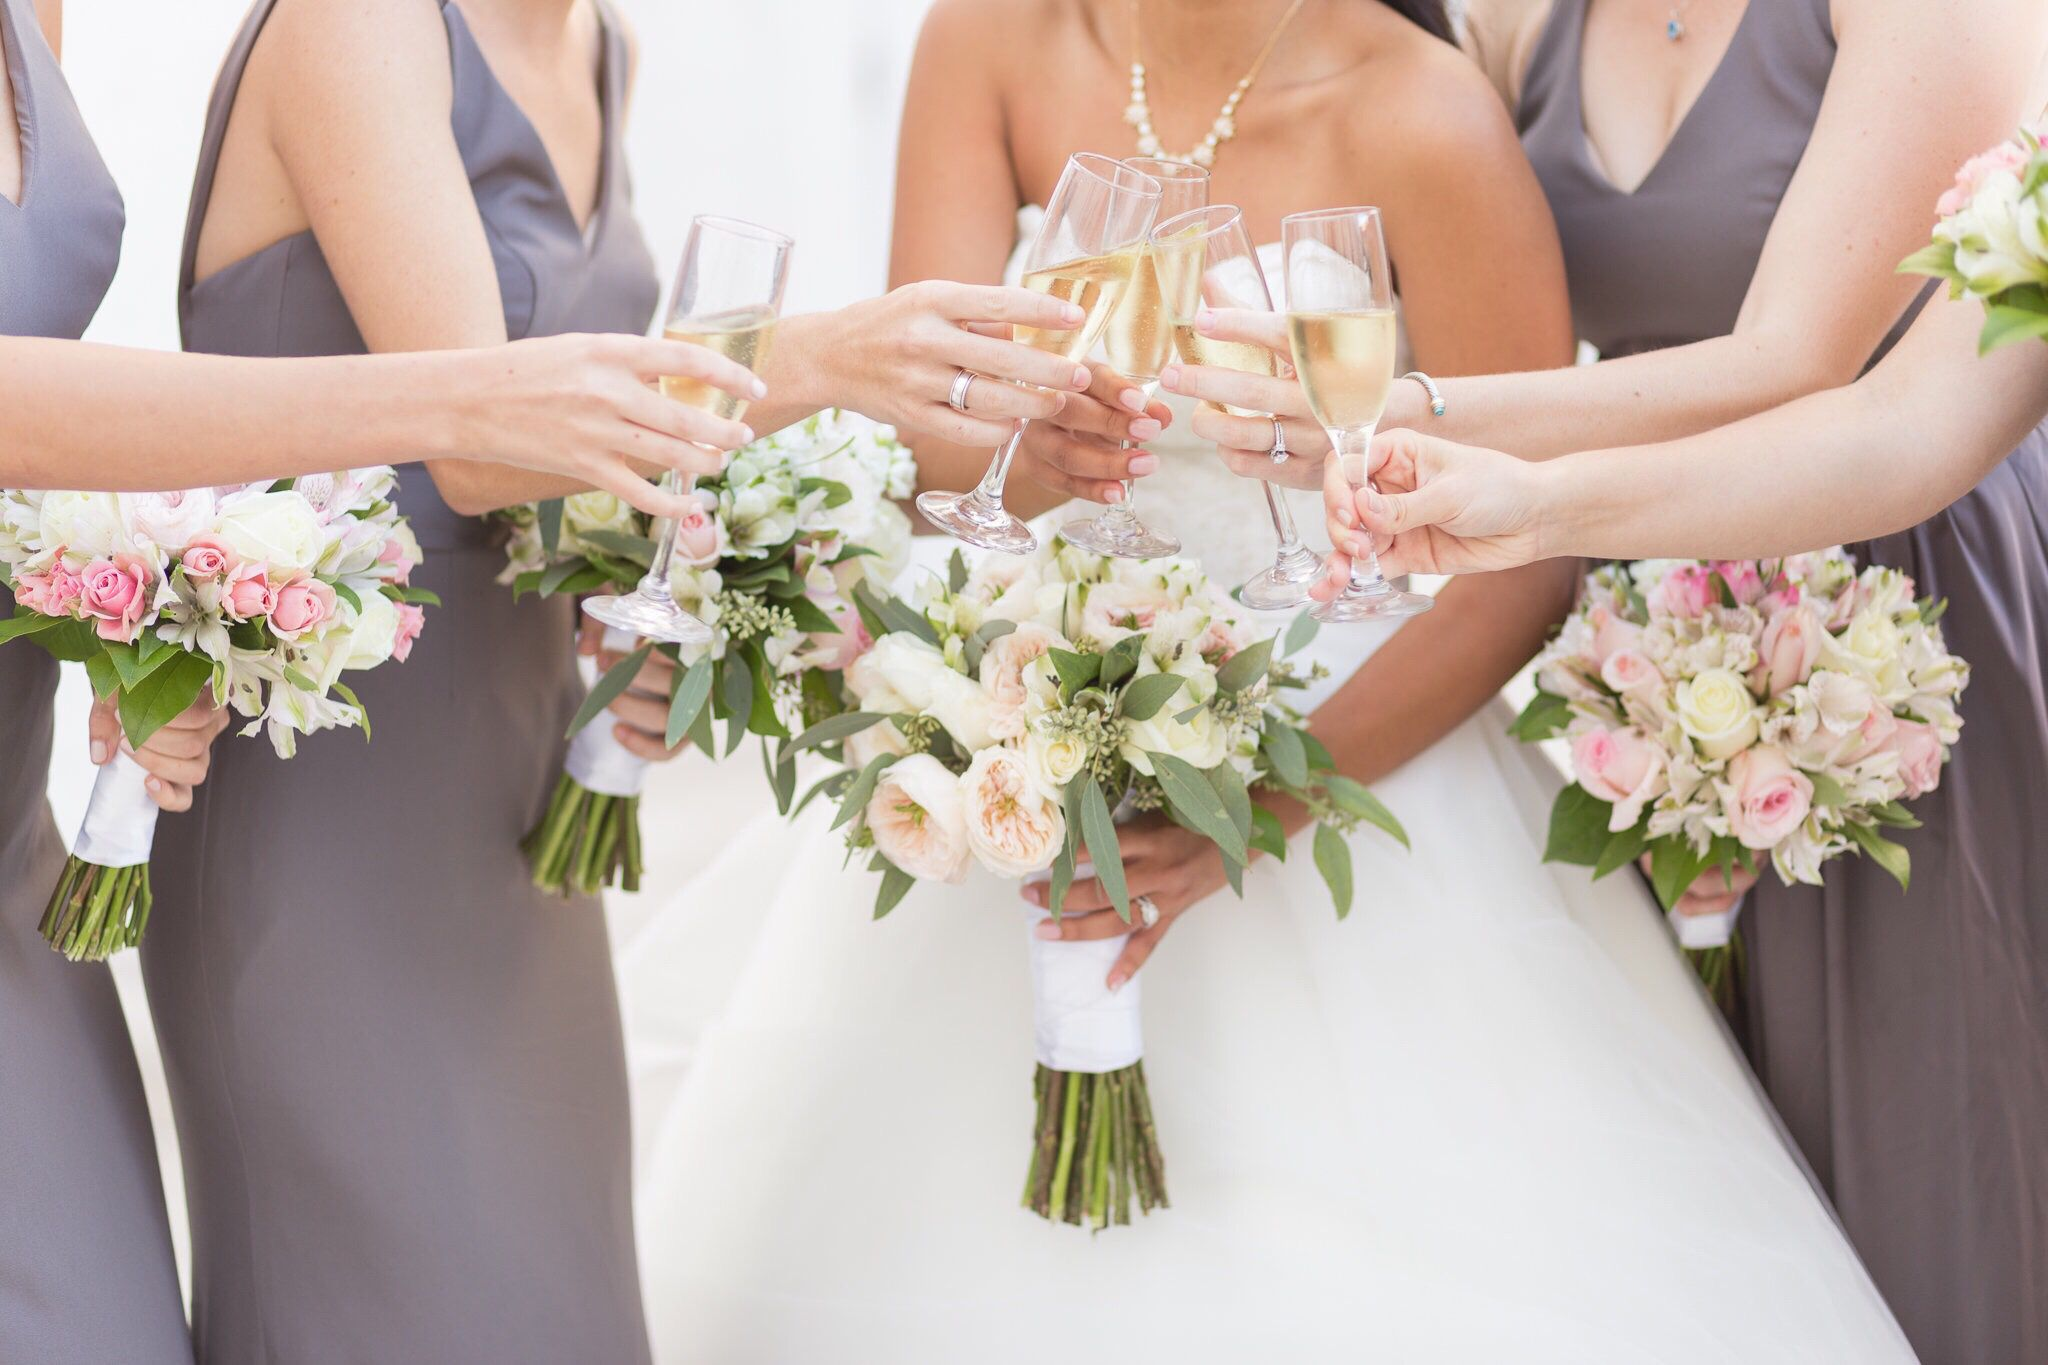 Who Traditionally Buys The Bridesmaids Dress